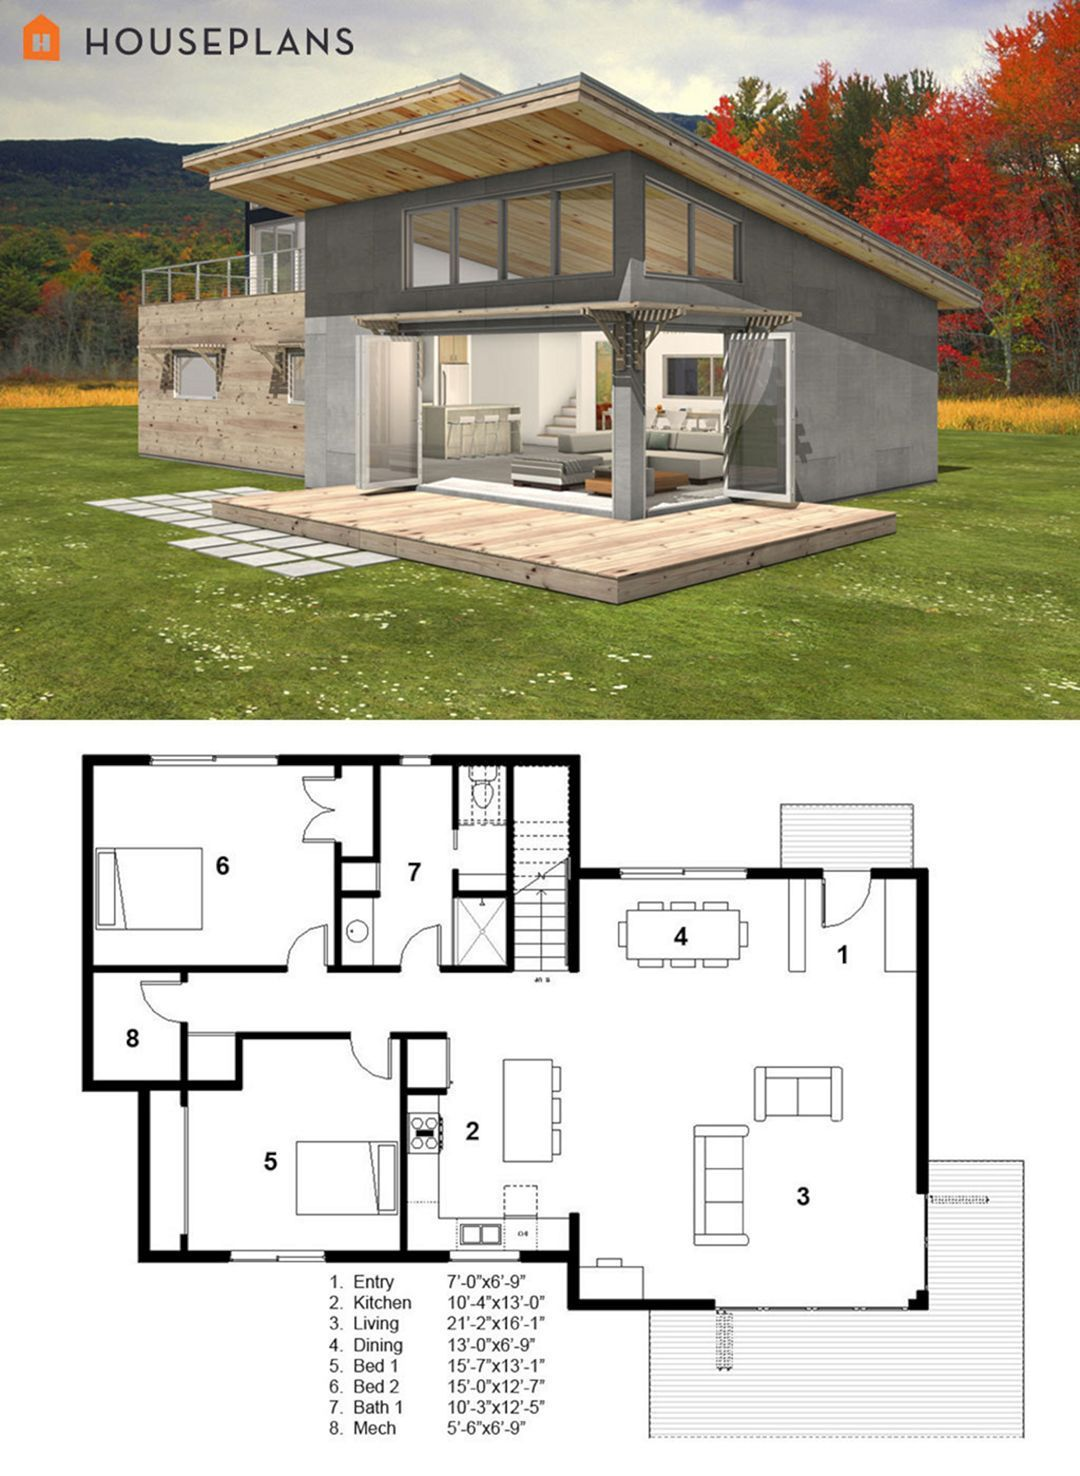 The Best Modern Tiny House Design Small Homes Inspirations No 50